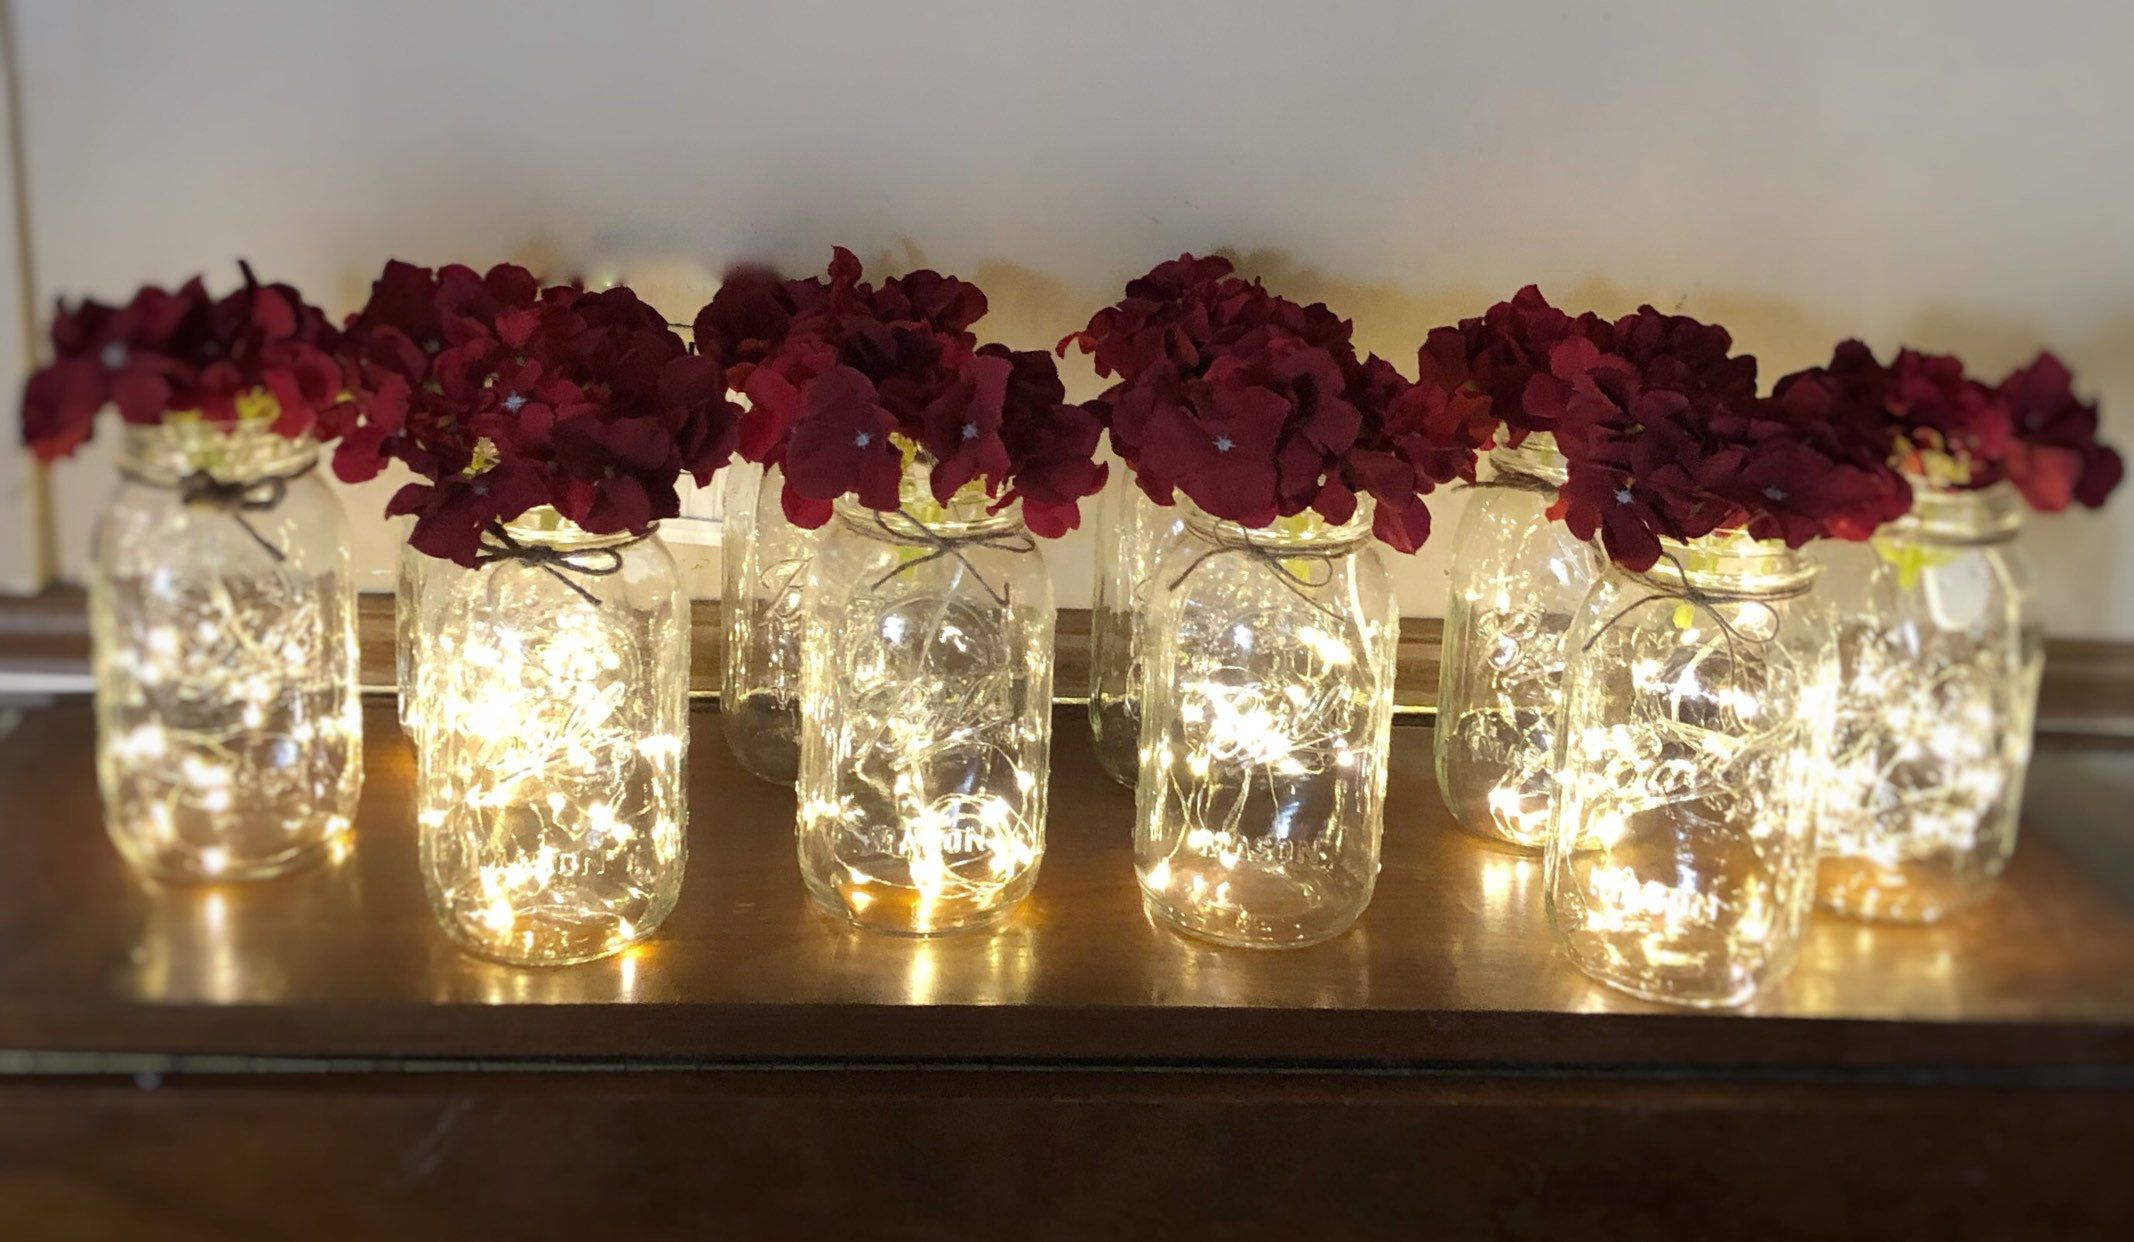 10 Floral Lights Mason Jar Centerpieces Fairy Lights Rustic Etsy Rustic Wedding Centerpieces Wedding Centerpieces Diy Country Party Decorations